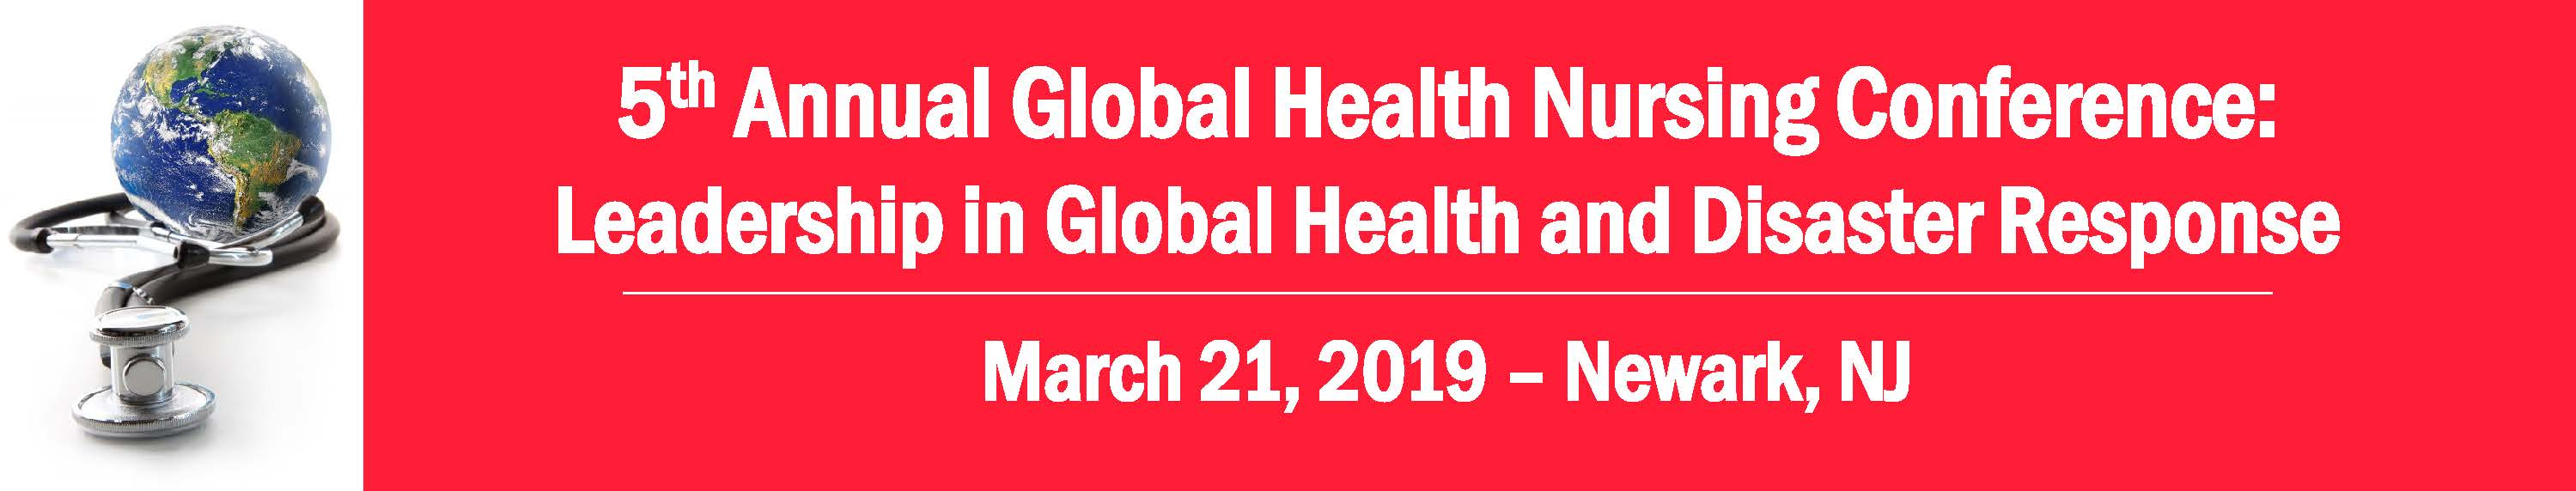 5th Annual Global Health Conference: Leadership in Global Health and Disaster Response Banner